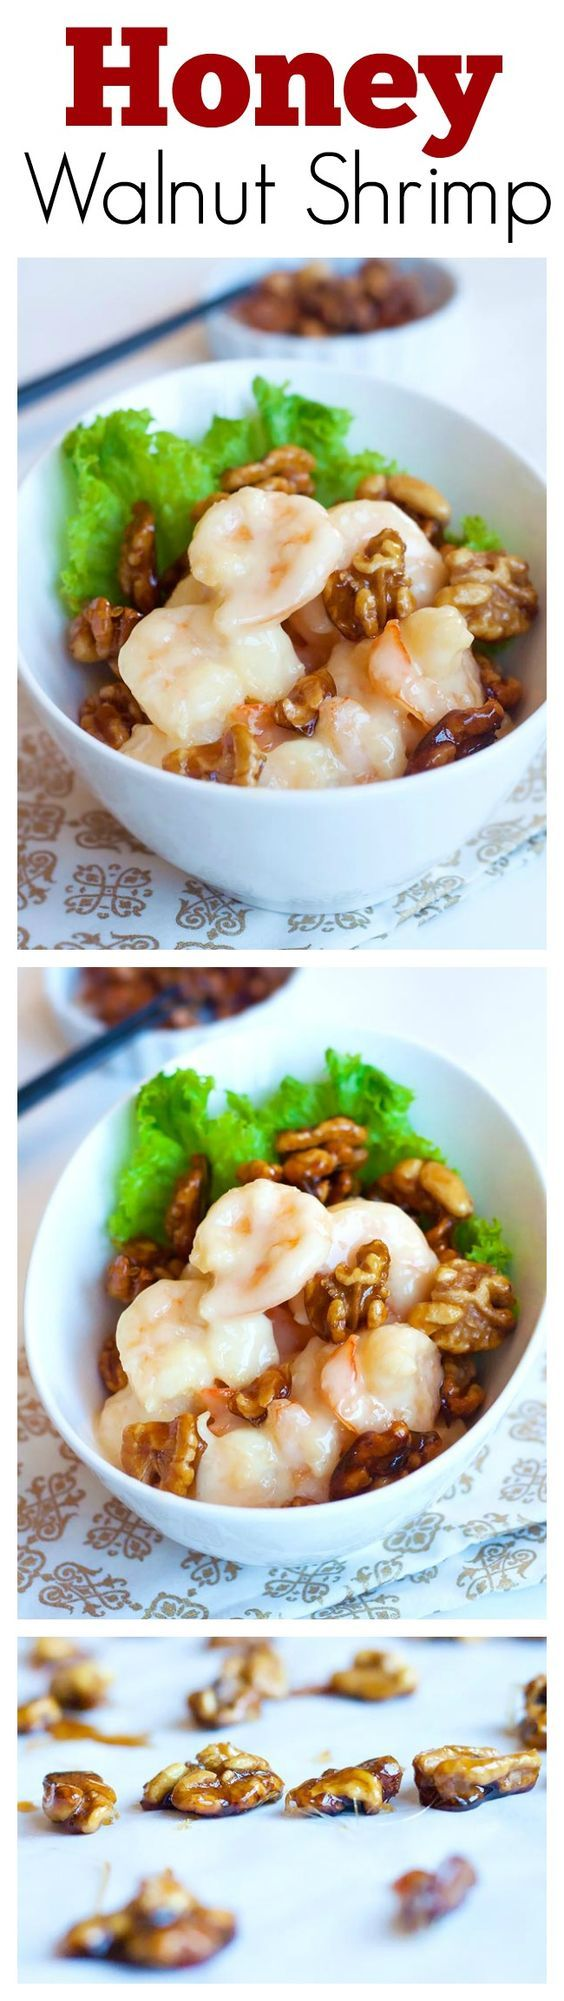 Honey walnut shrimp with sweet mayo sauce. Learn how to make it with this quick and easy recipe. So delicious, a must try | rasamalaysia.com